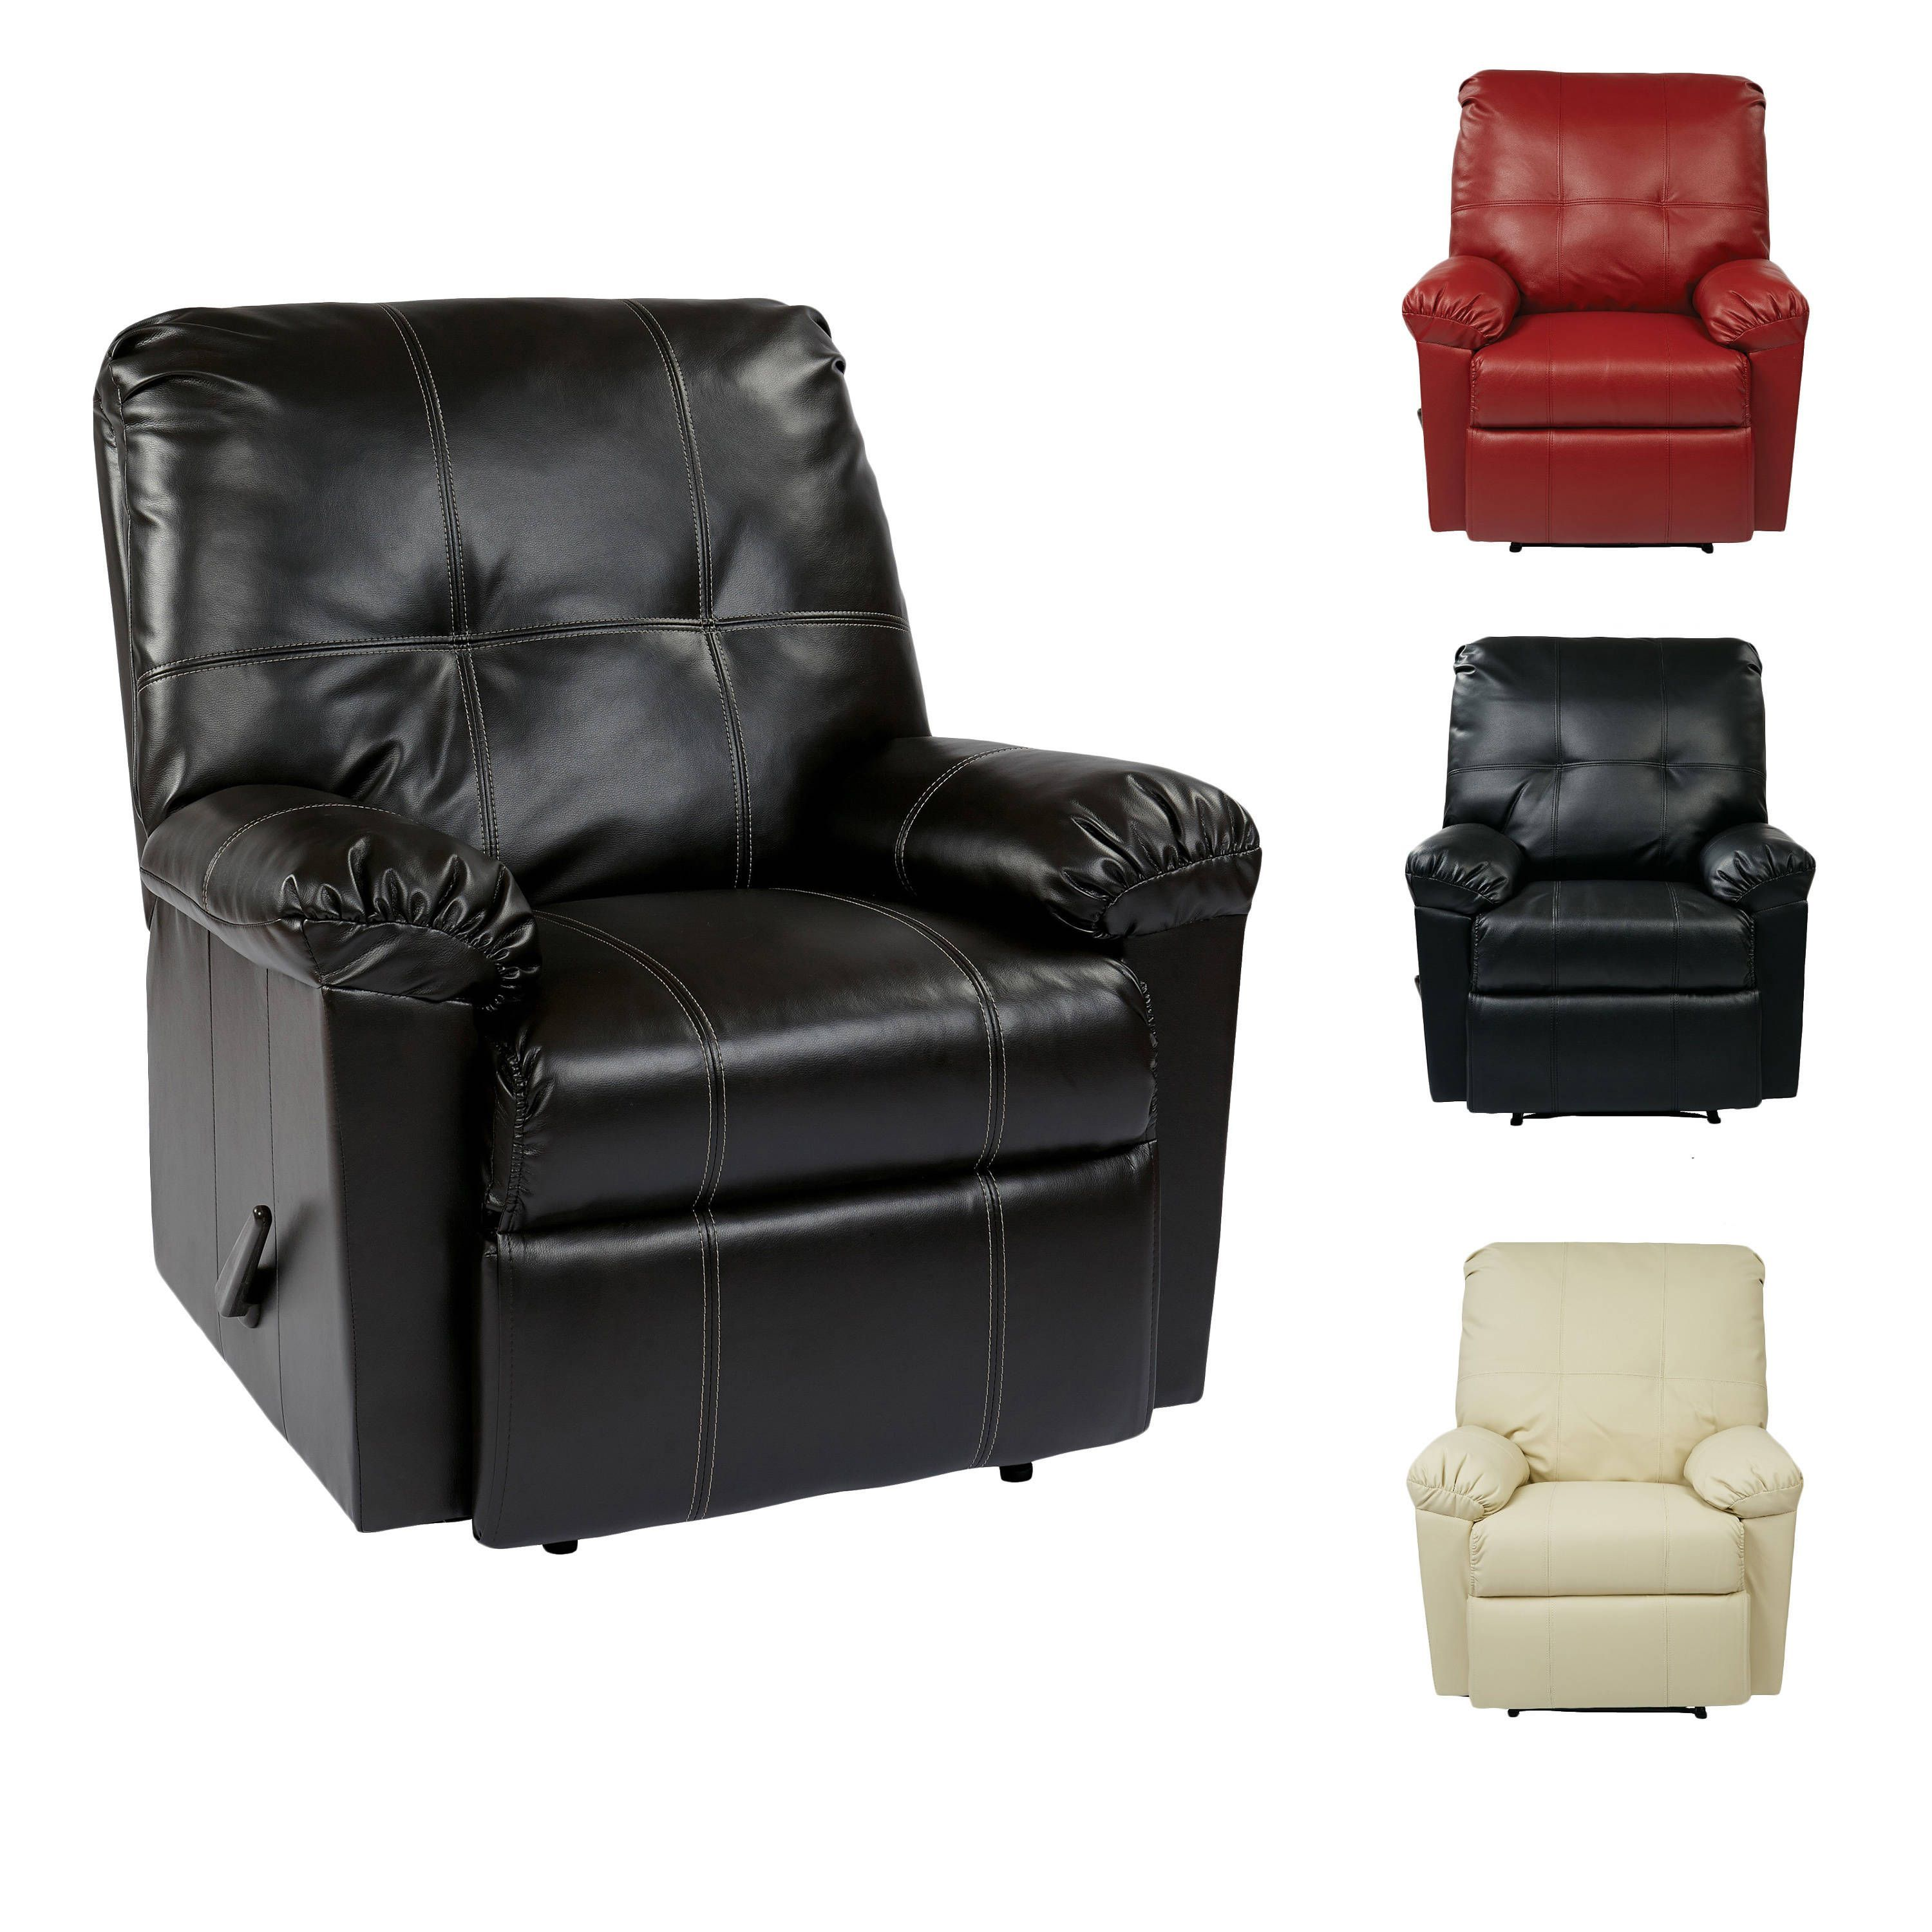 office recliners. Office Star Products Kensington Eco-friendly Leatherette Recliner With Solid Wood Legs (Recliner In Black), Size Standard (Foam) Recliners